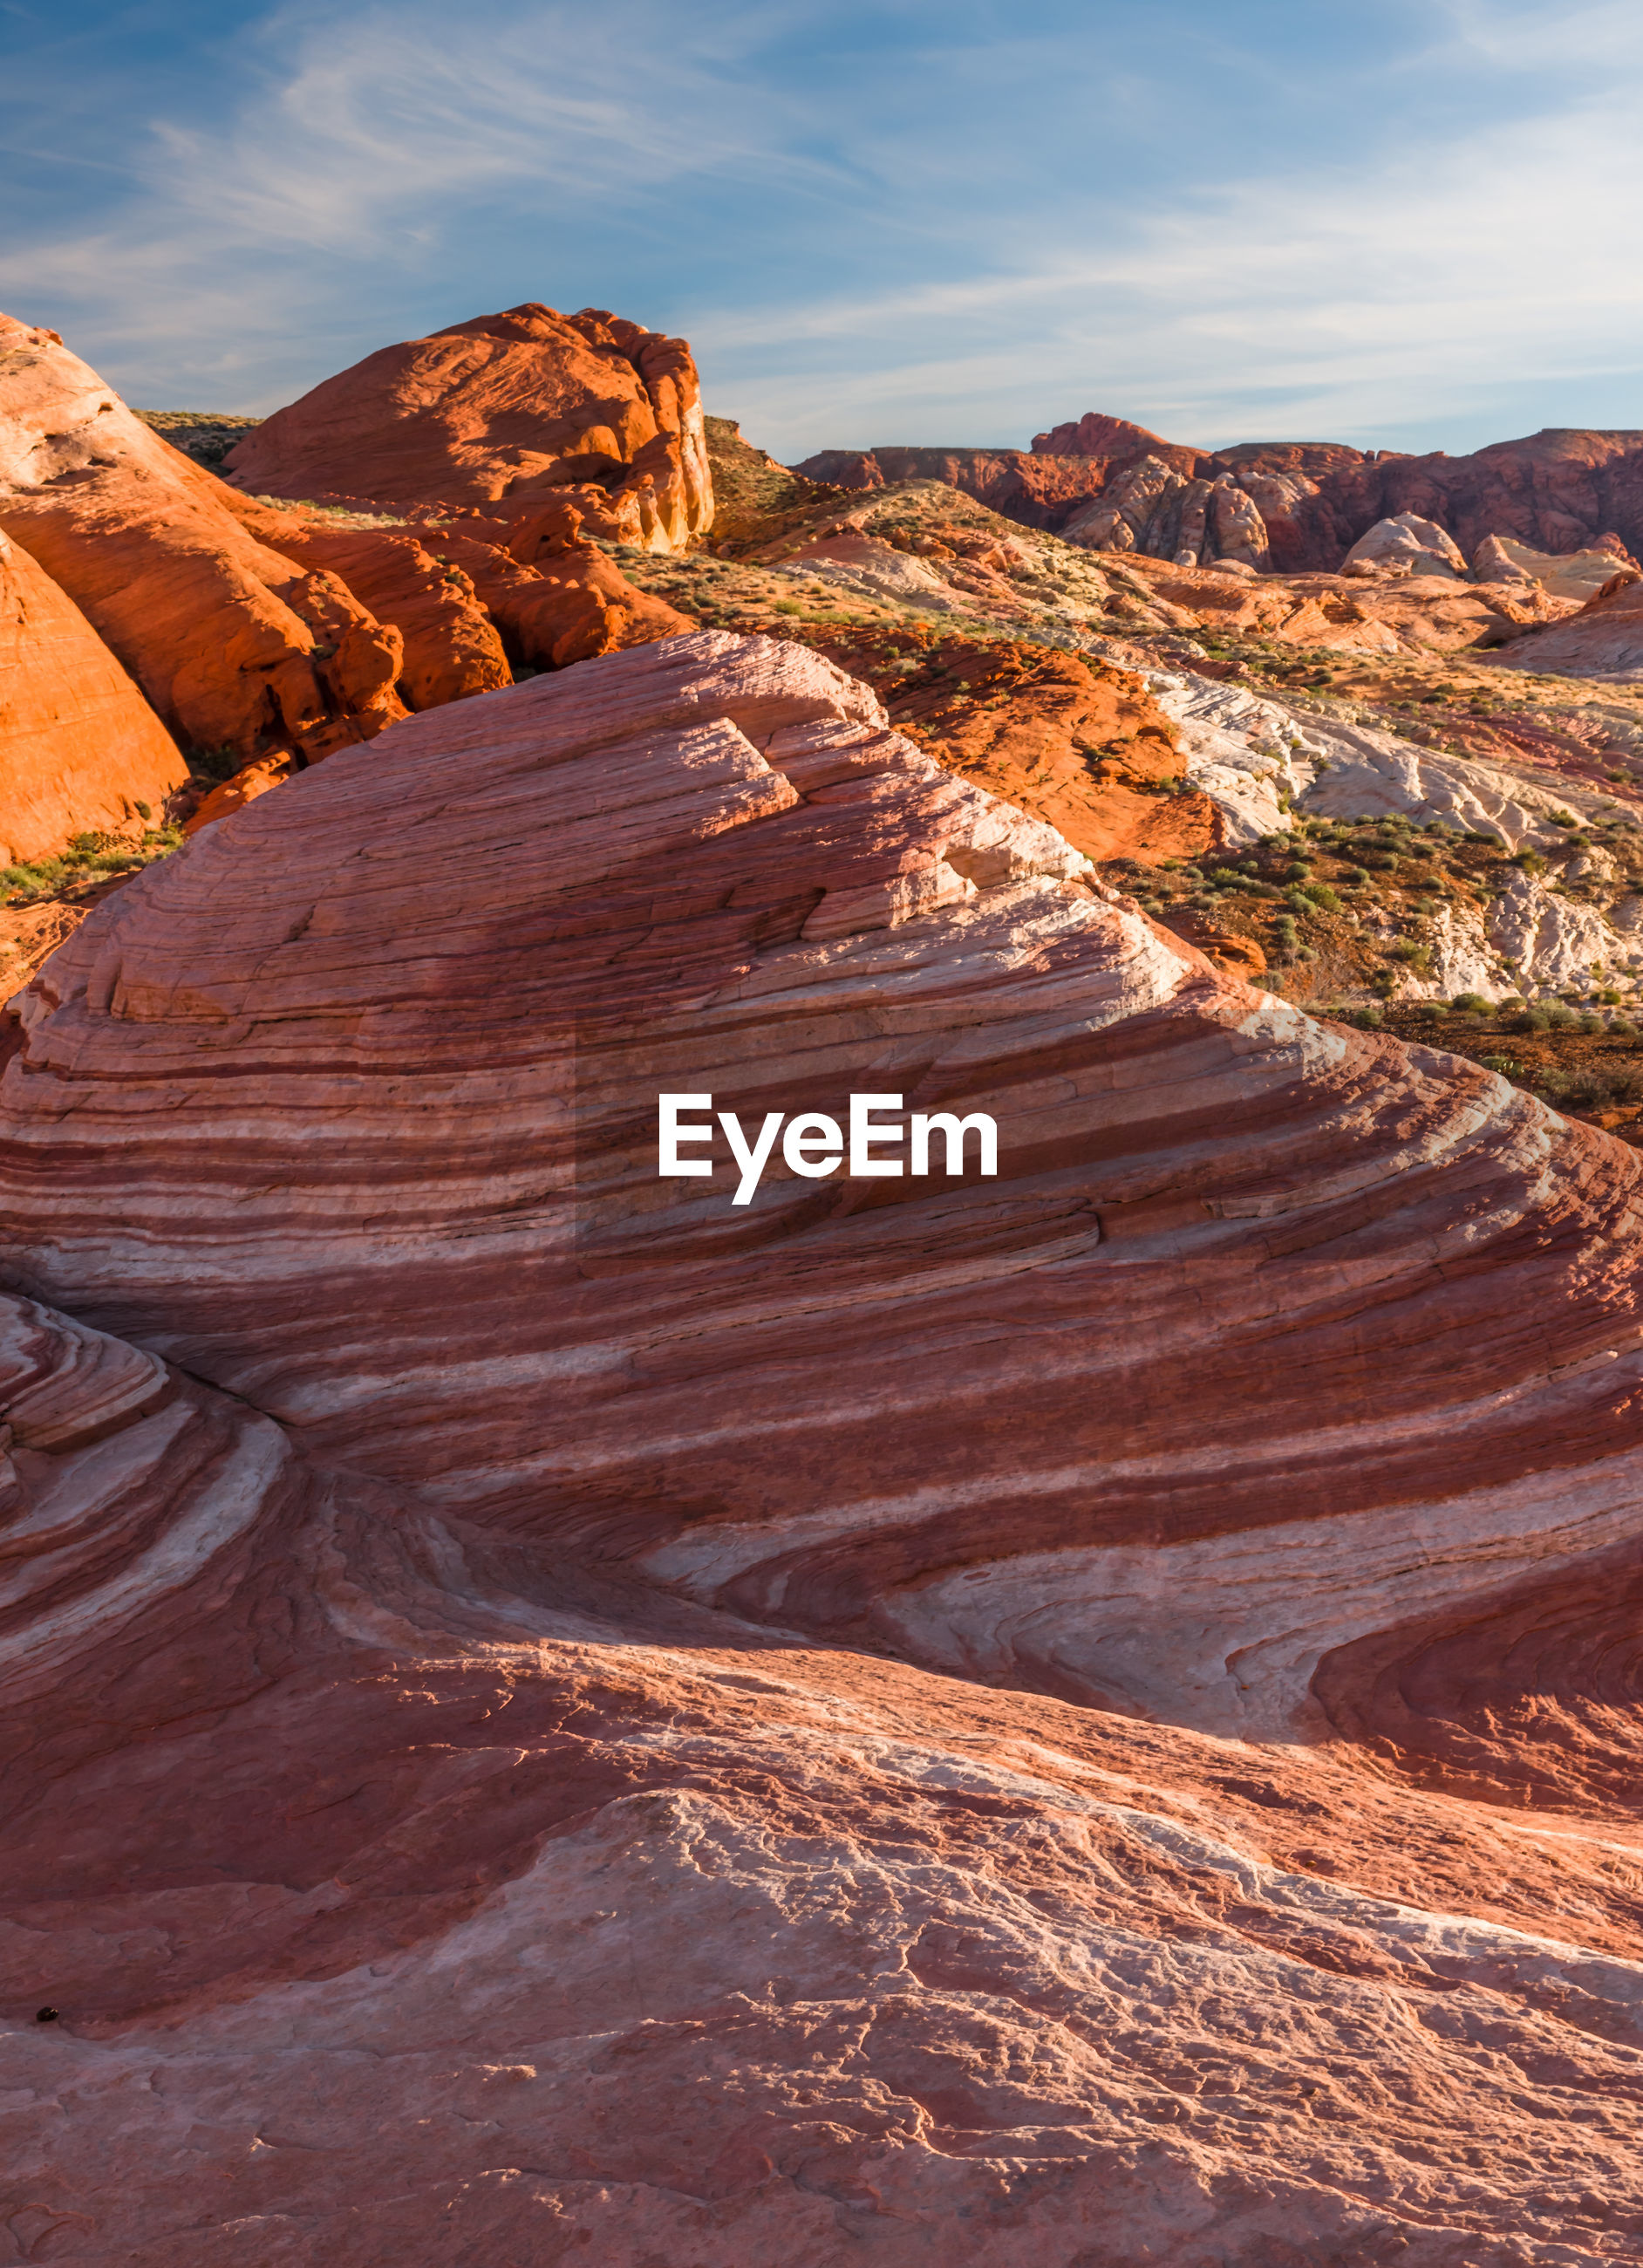 SCENIC VIEW OF ROCK FORMATIONS IN CANYON